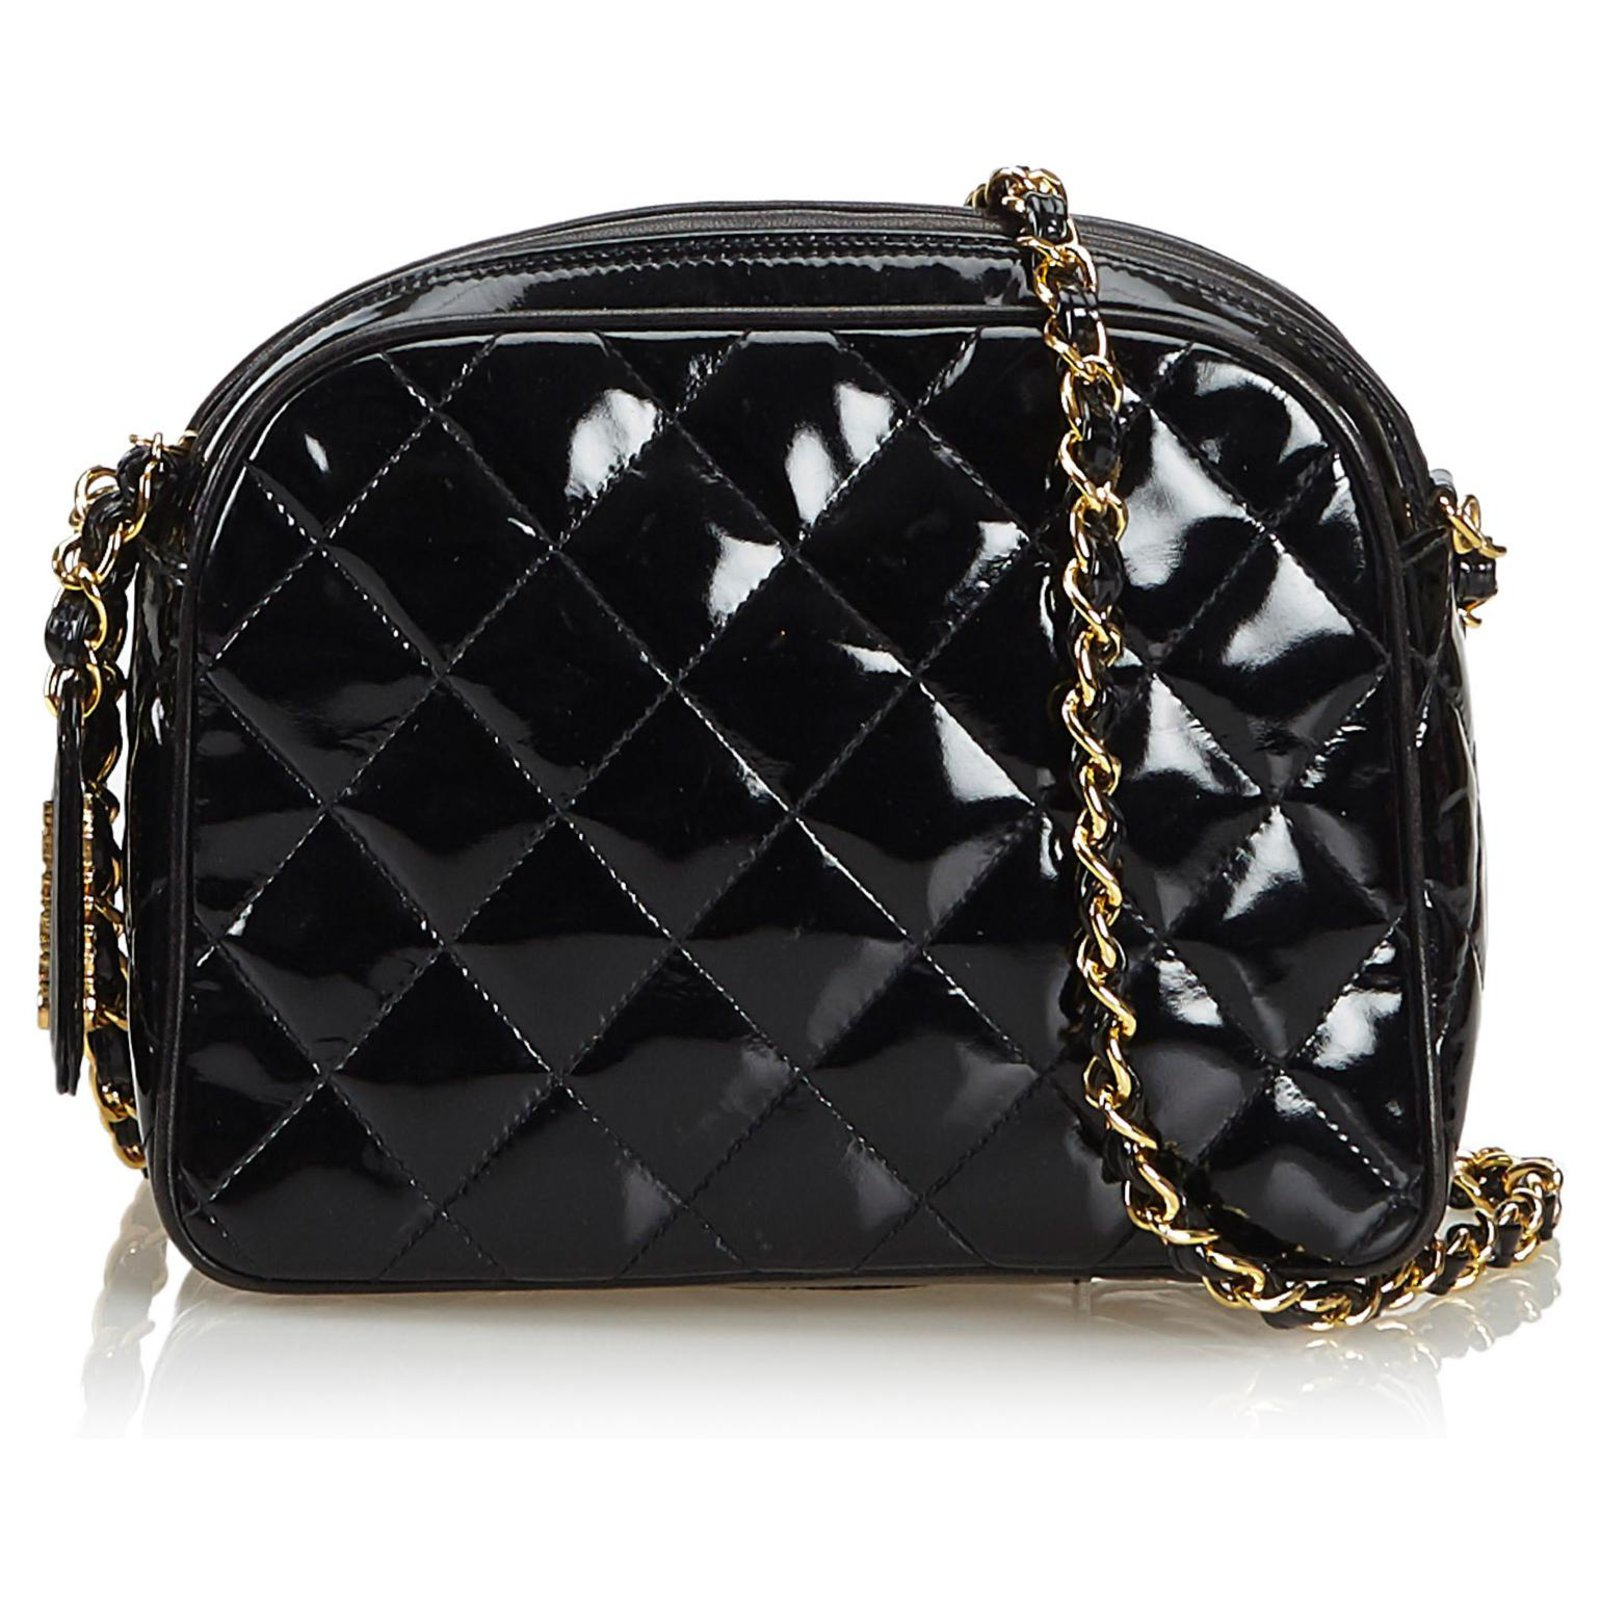 Chanel Black Patent Leather Quilted Chain Crossbody